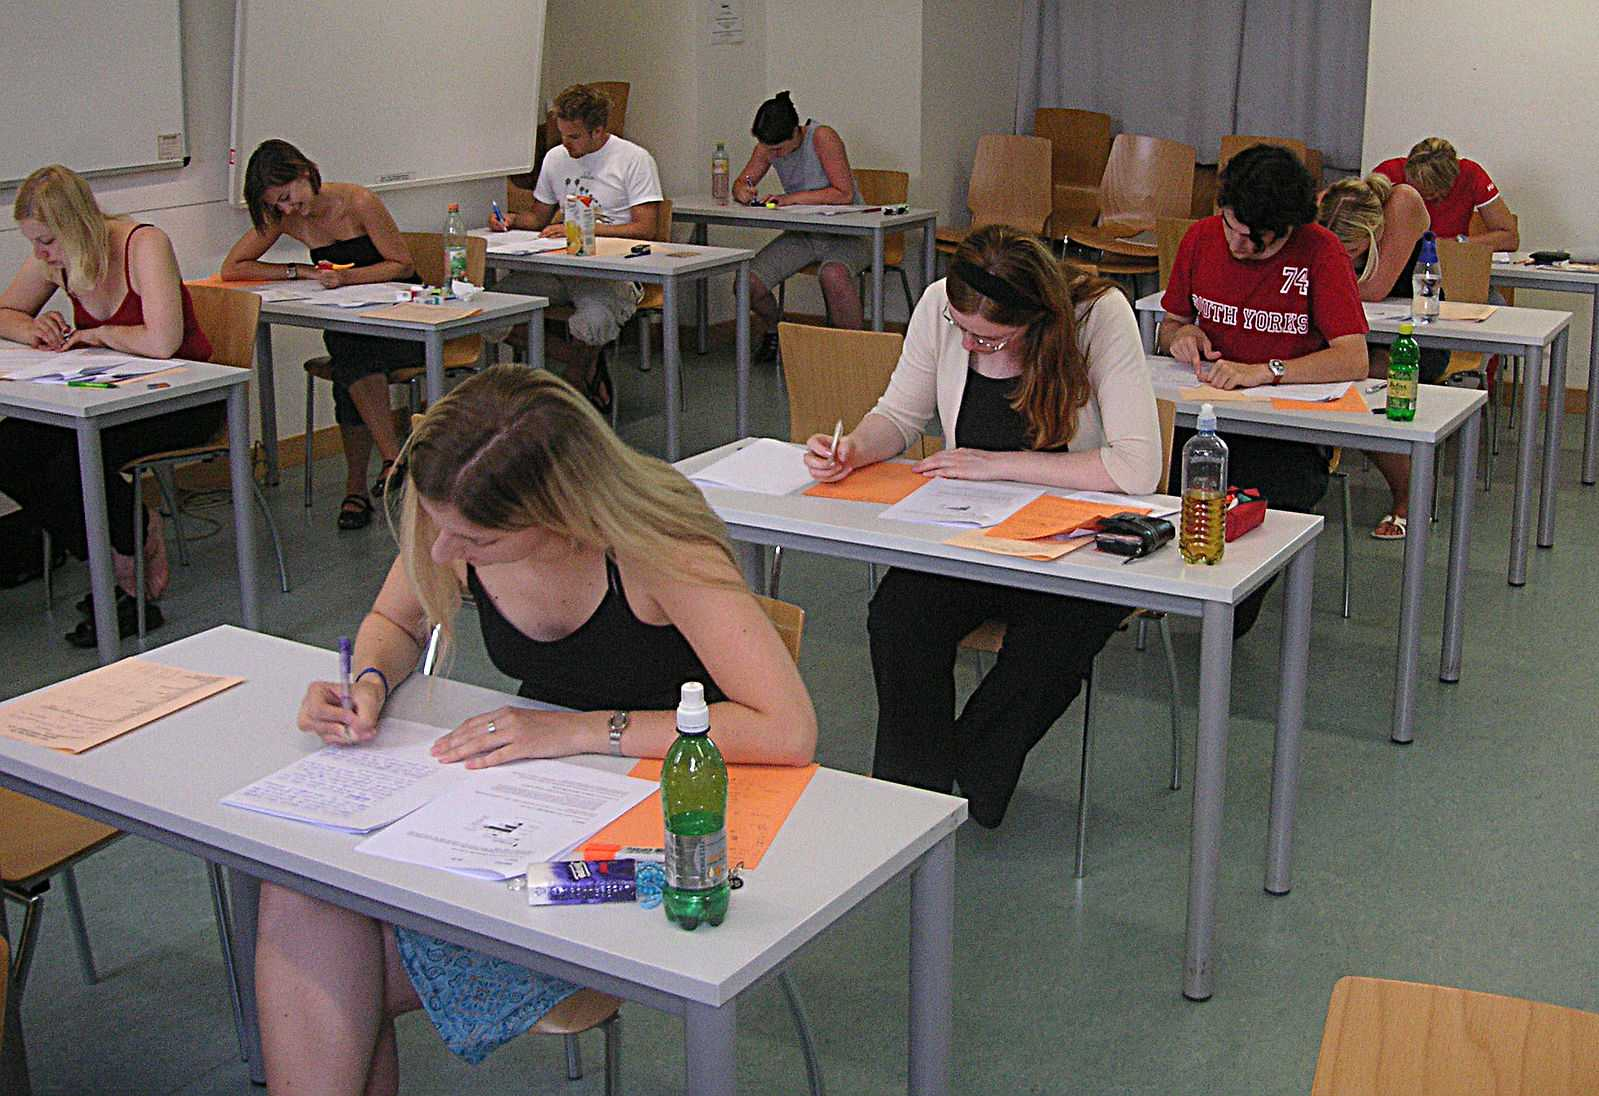 The SAT is a national exam taken by high school students as a prerequisite for college. Photo courtesy of Wikimedia Commons.